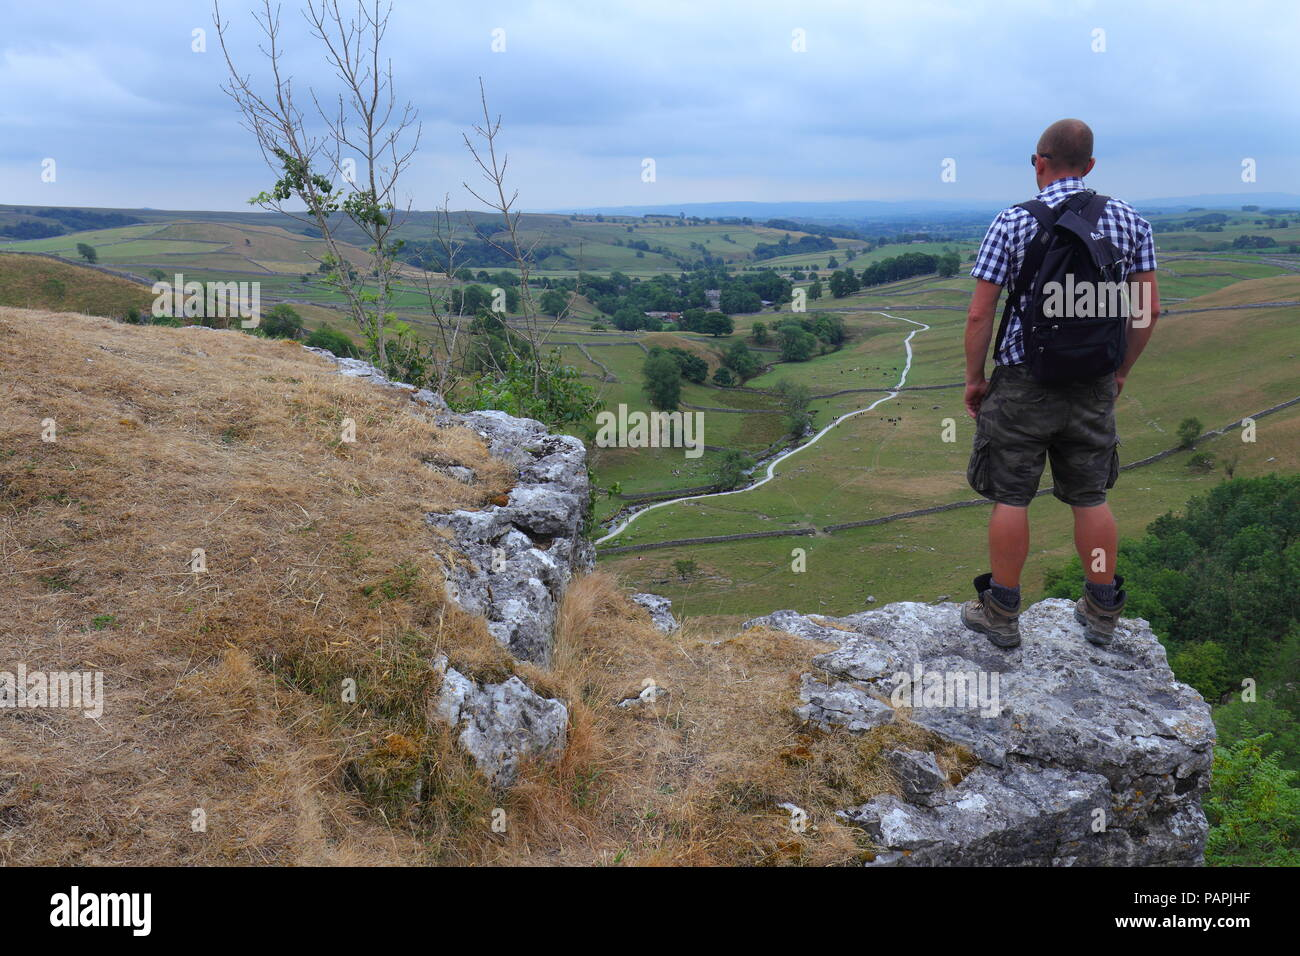 A tourist takes in the beautiful scenery of the Yorkshire Dales from the top of Malham Cove - Stock Image